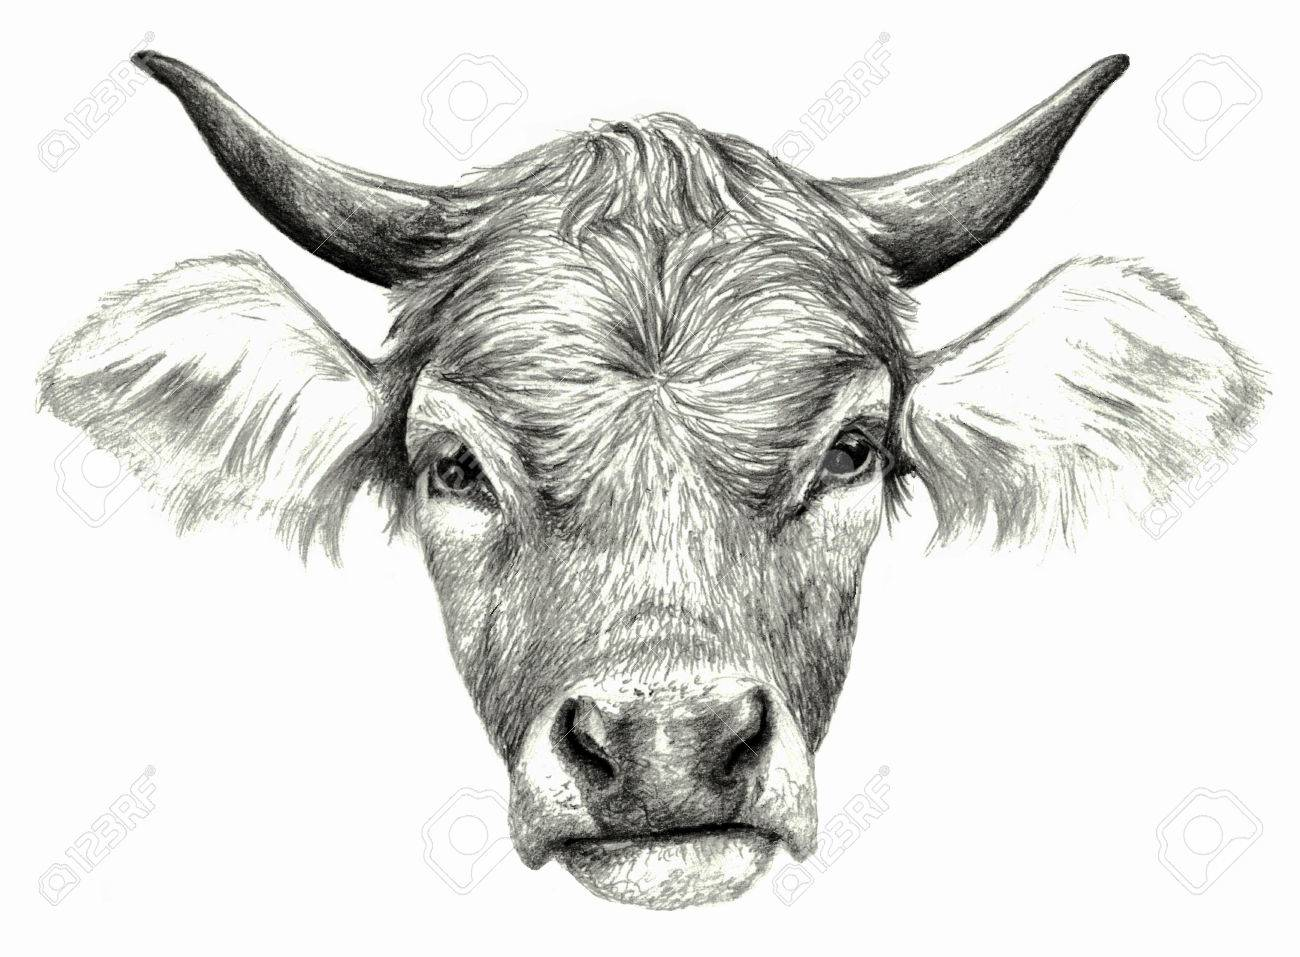 Cows head isolated on white background pencil drawing monochrome